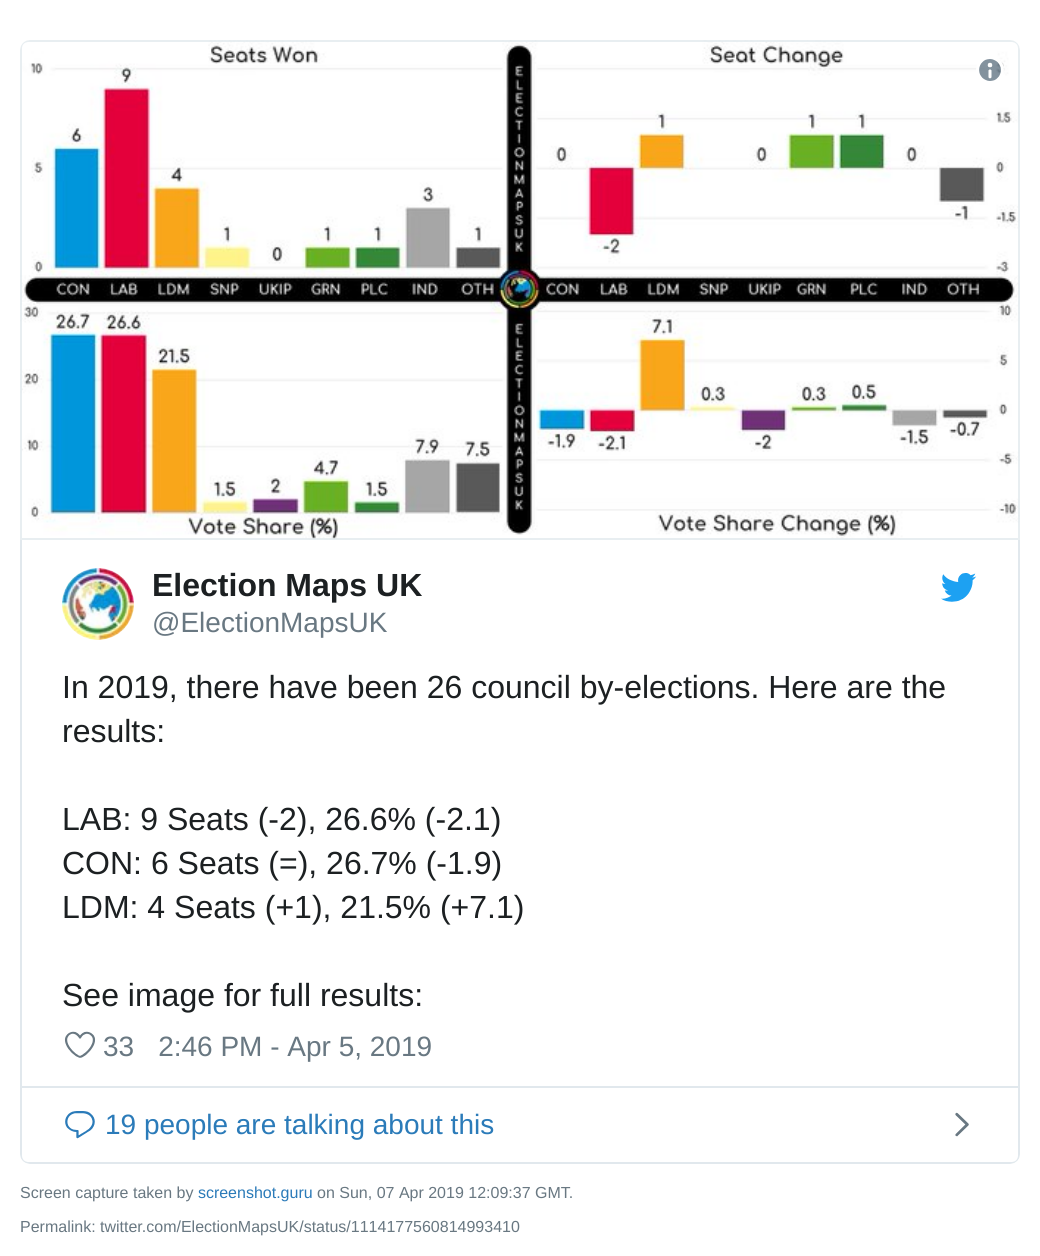 Round of council by-election results so far in 2019 - 8 April